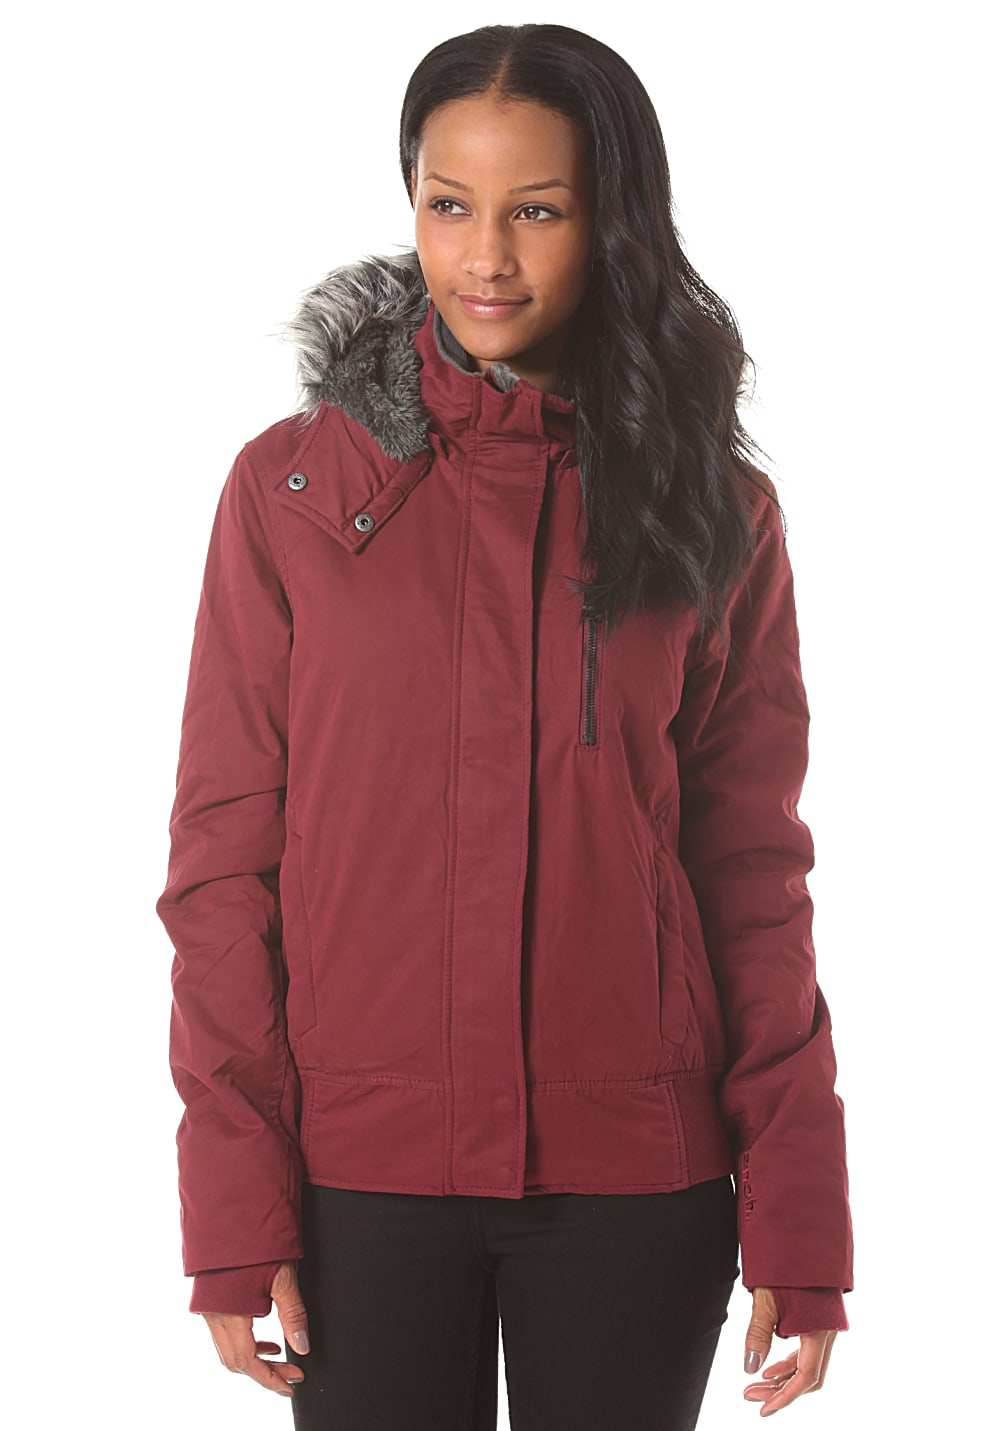 Bench Tommy Tom - Jacke für Damen - Rot - M